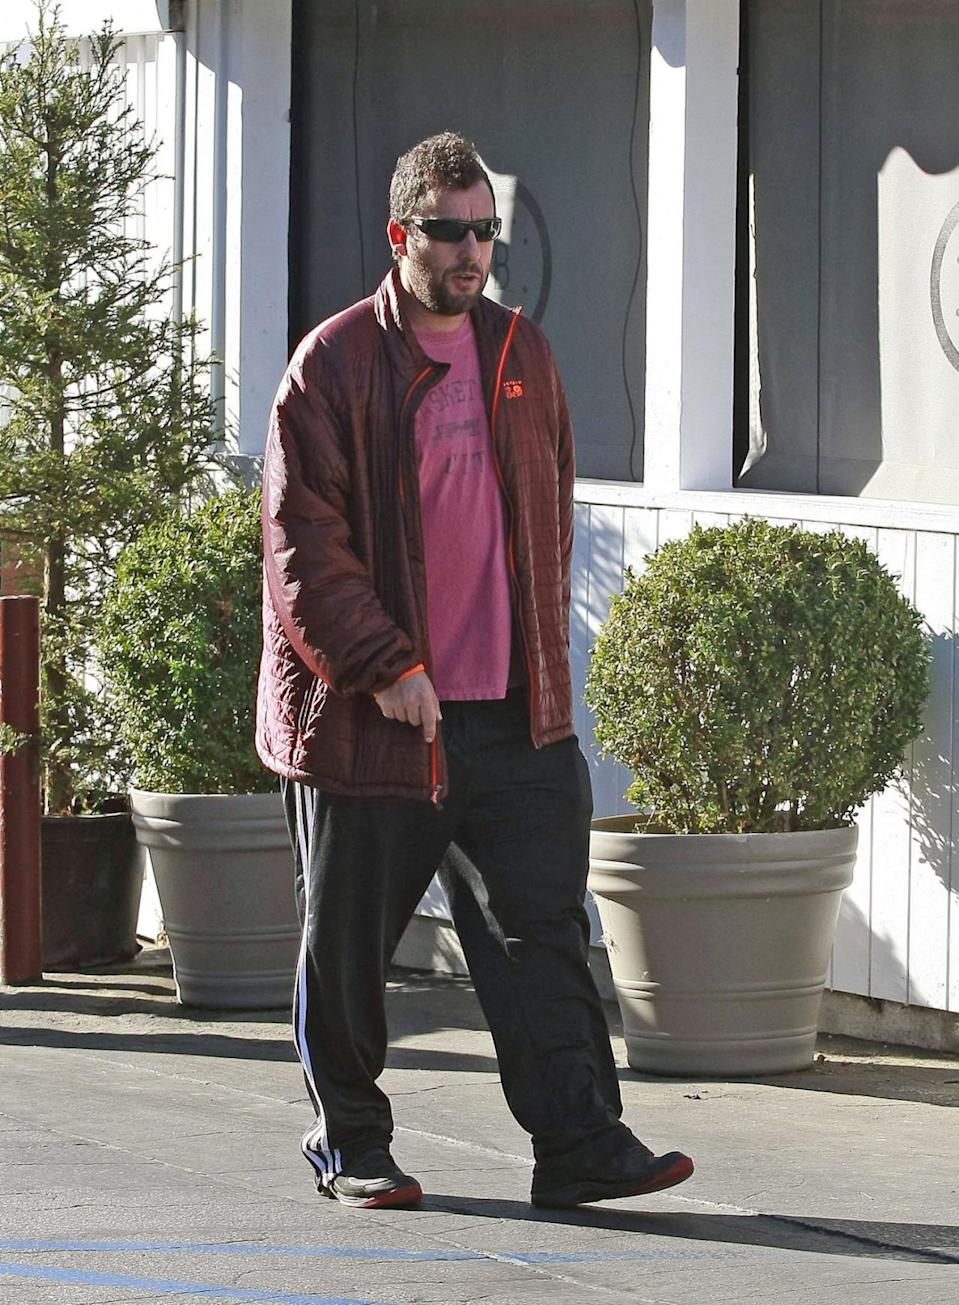 <p>Sandler, we'd recognize those track pants anywhere! (Photo: Bauer-Griffin/FilmMagic)</p>